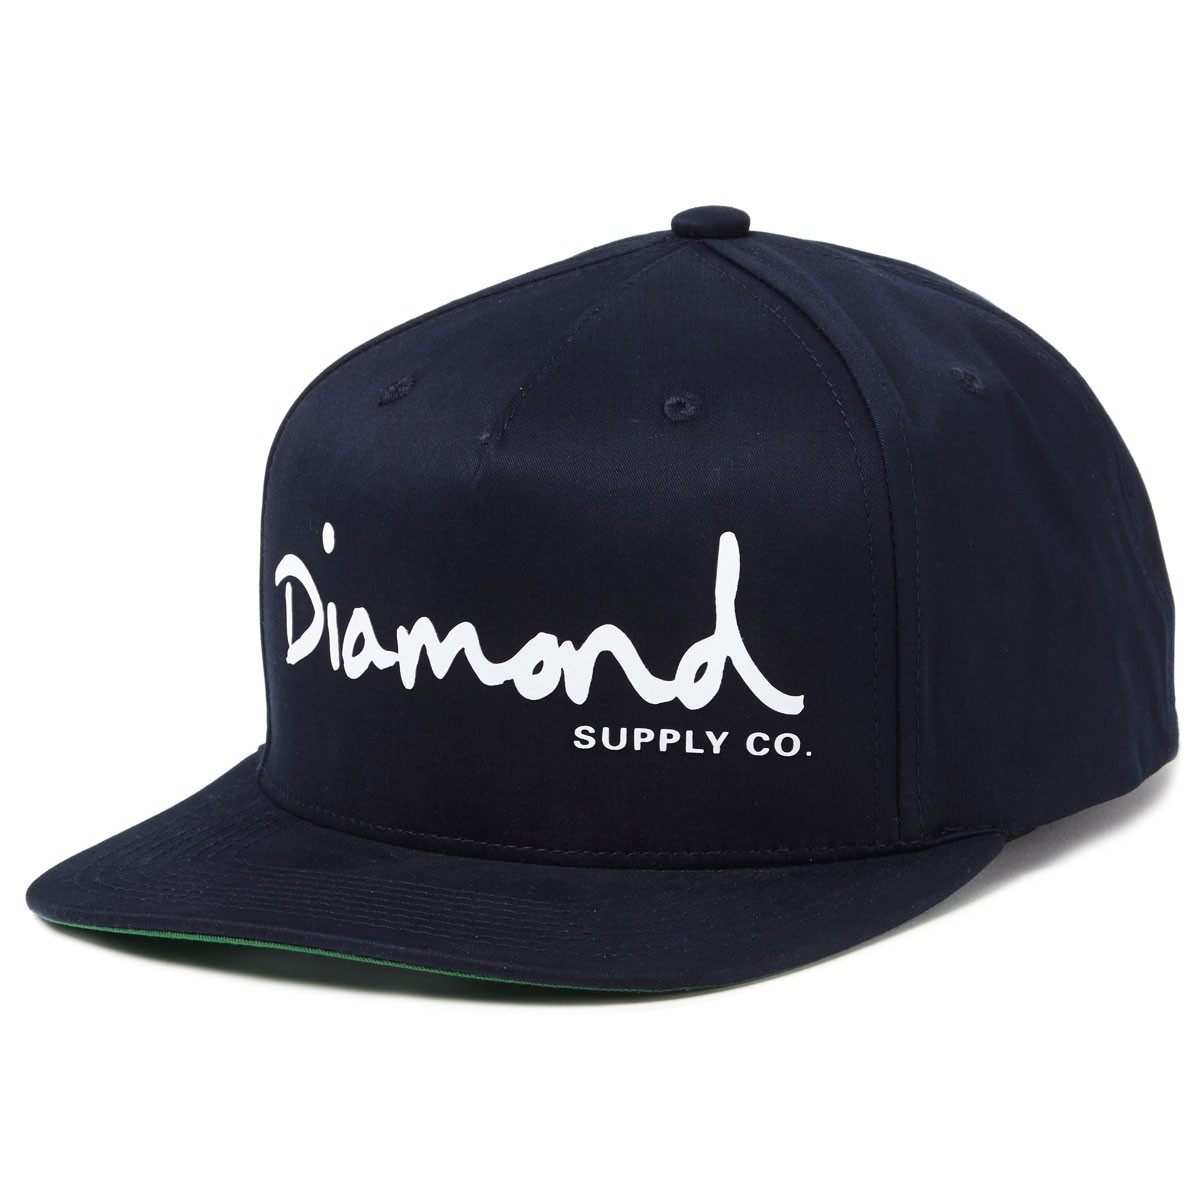 Diamond Supply Co. OG Script Snapback Hats - Navy